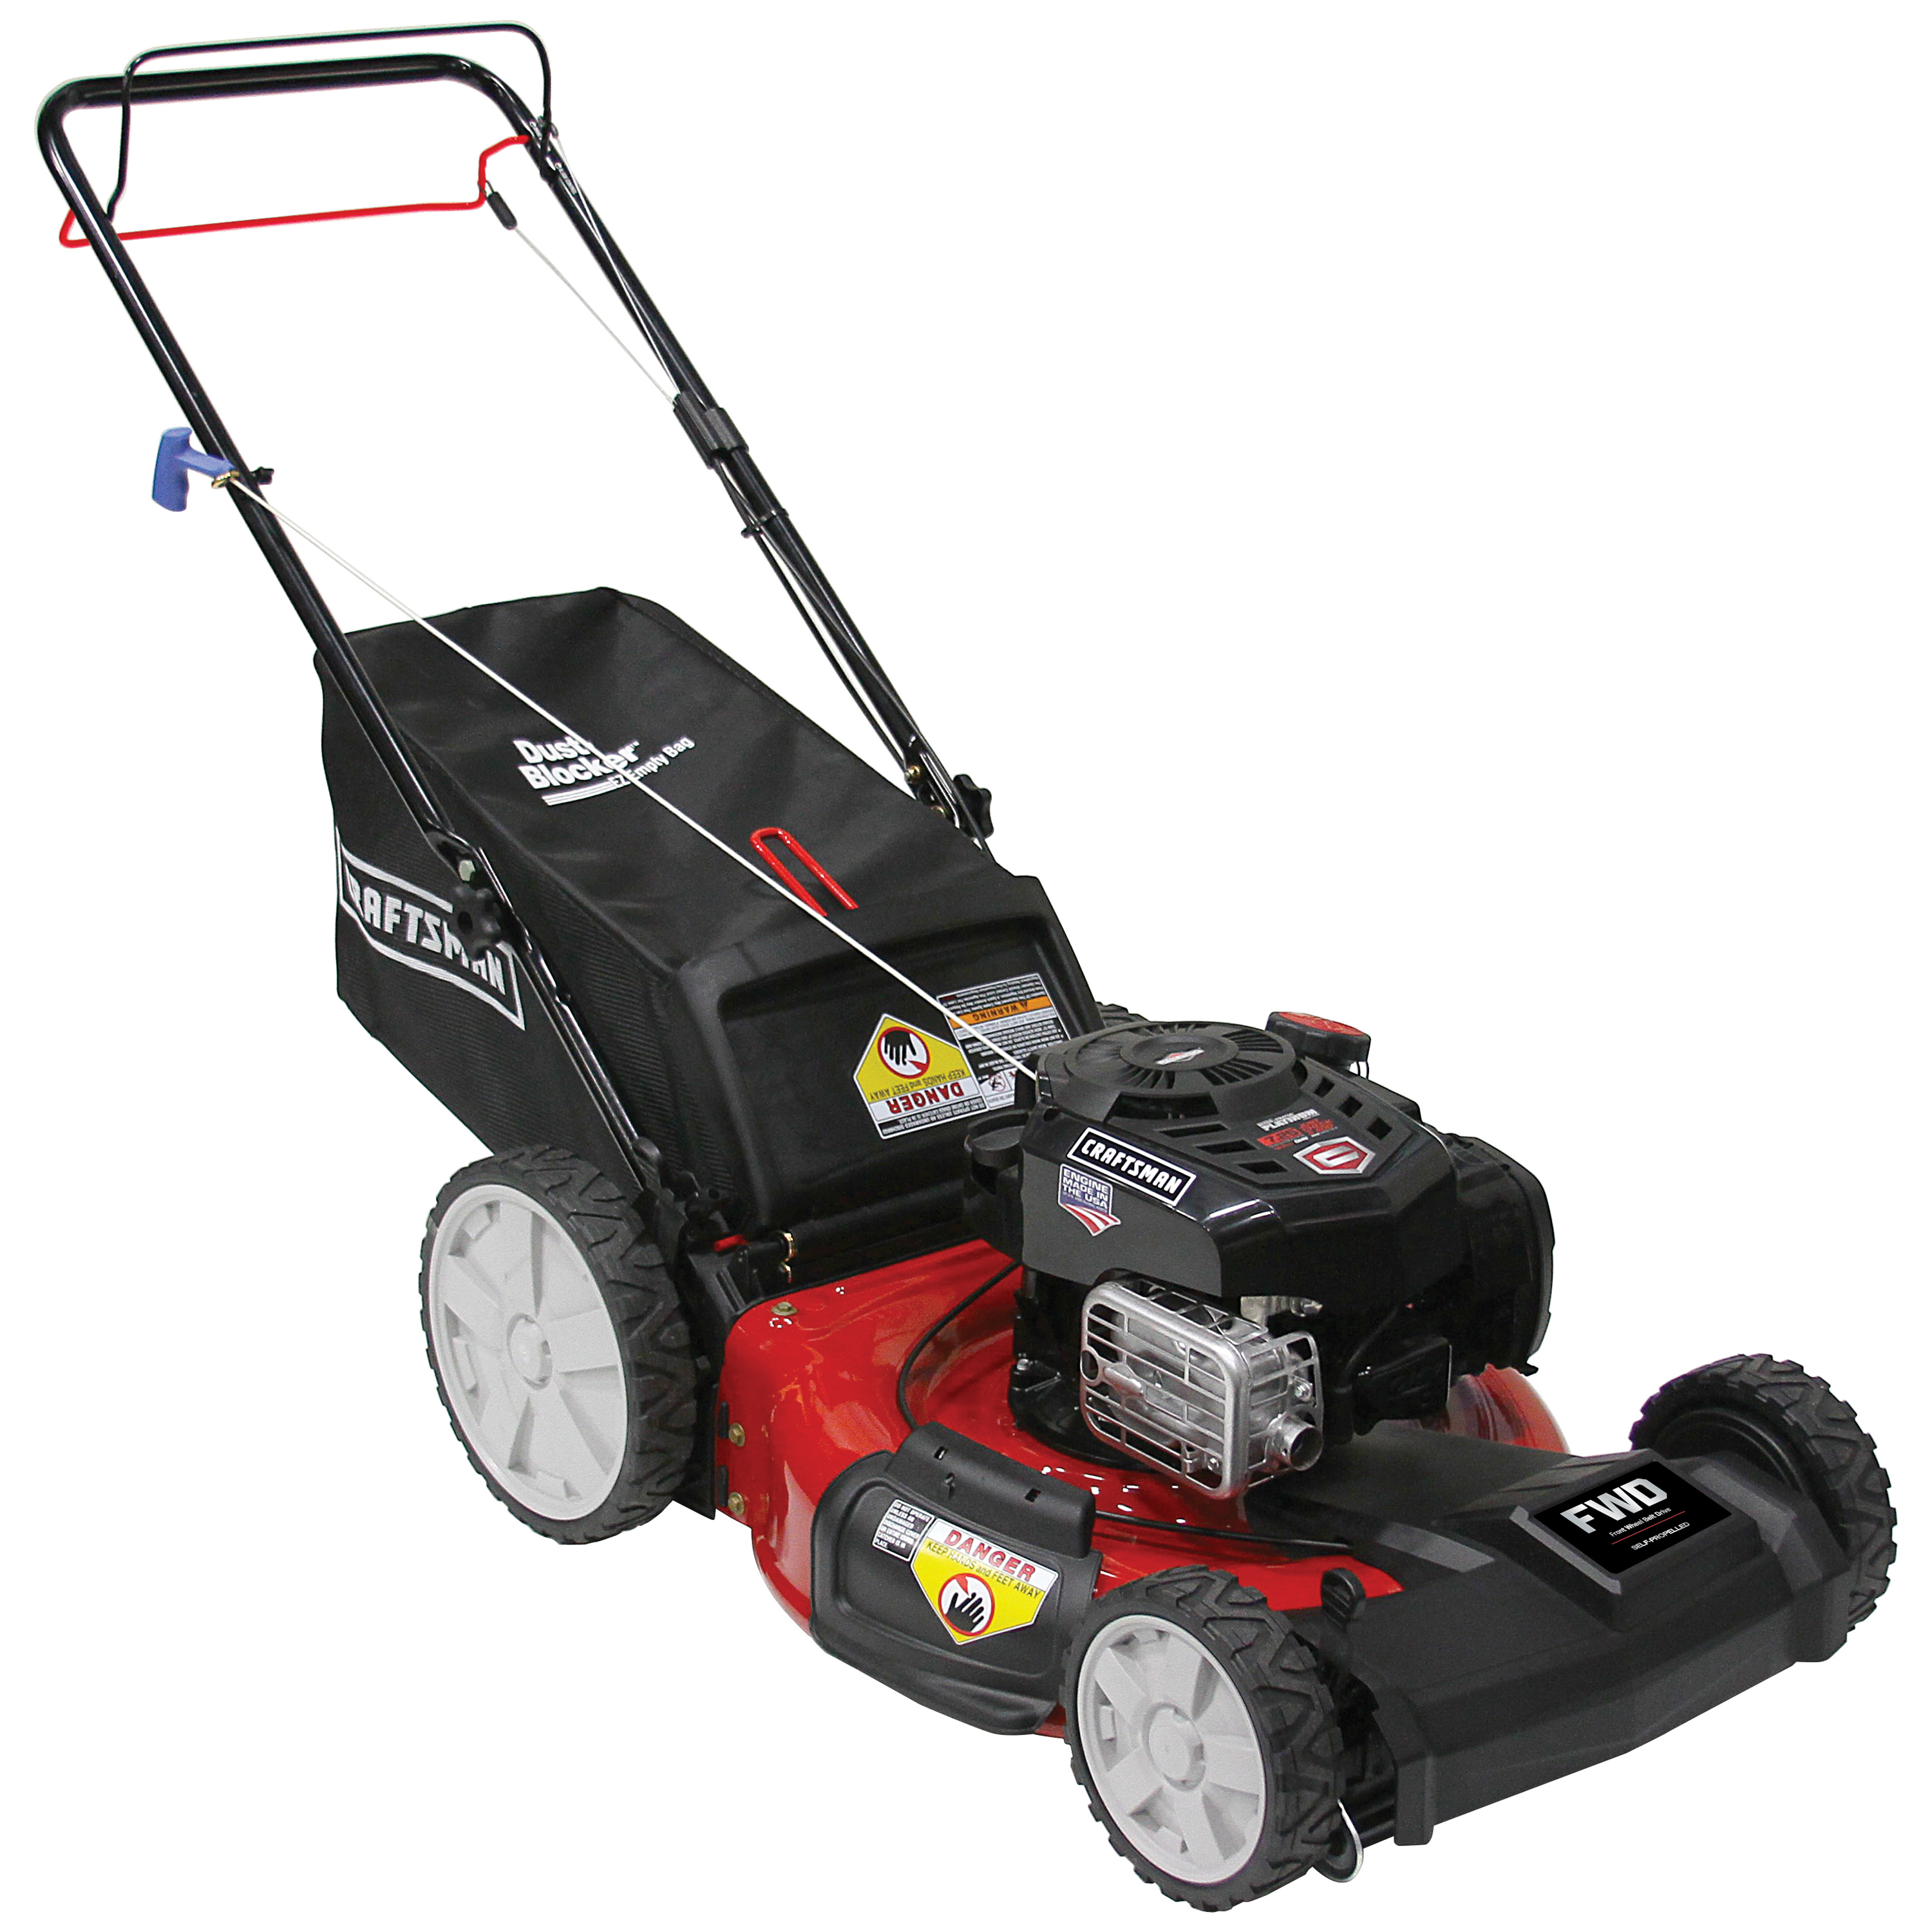 hight resolution of craftsman 37705 21 163cc front wheel drive lawn mower with high rear wheels